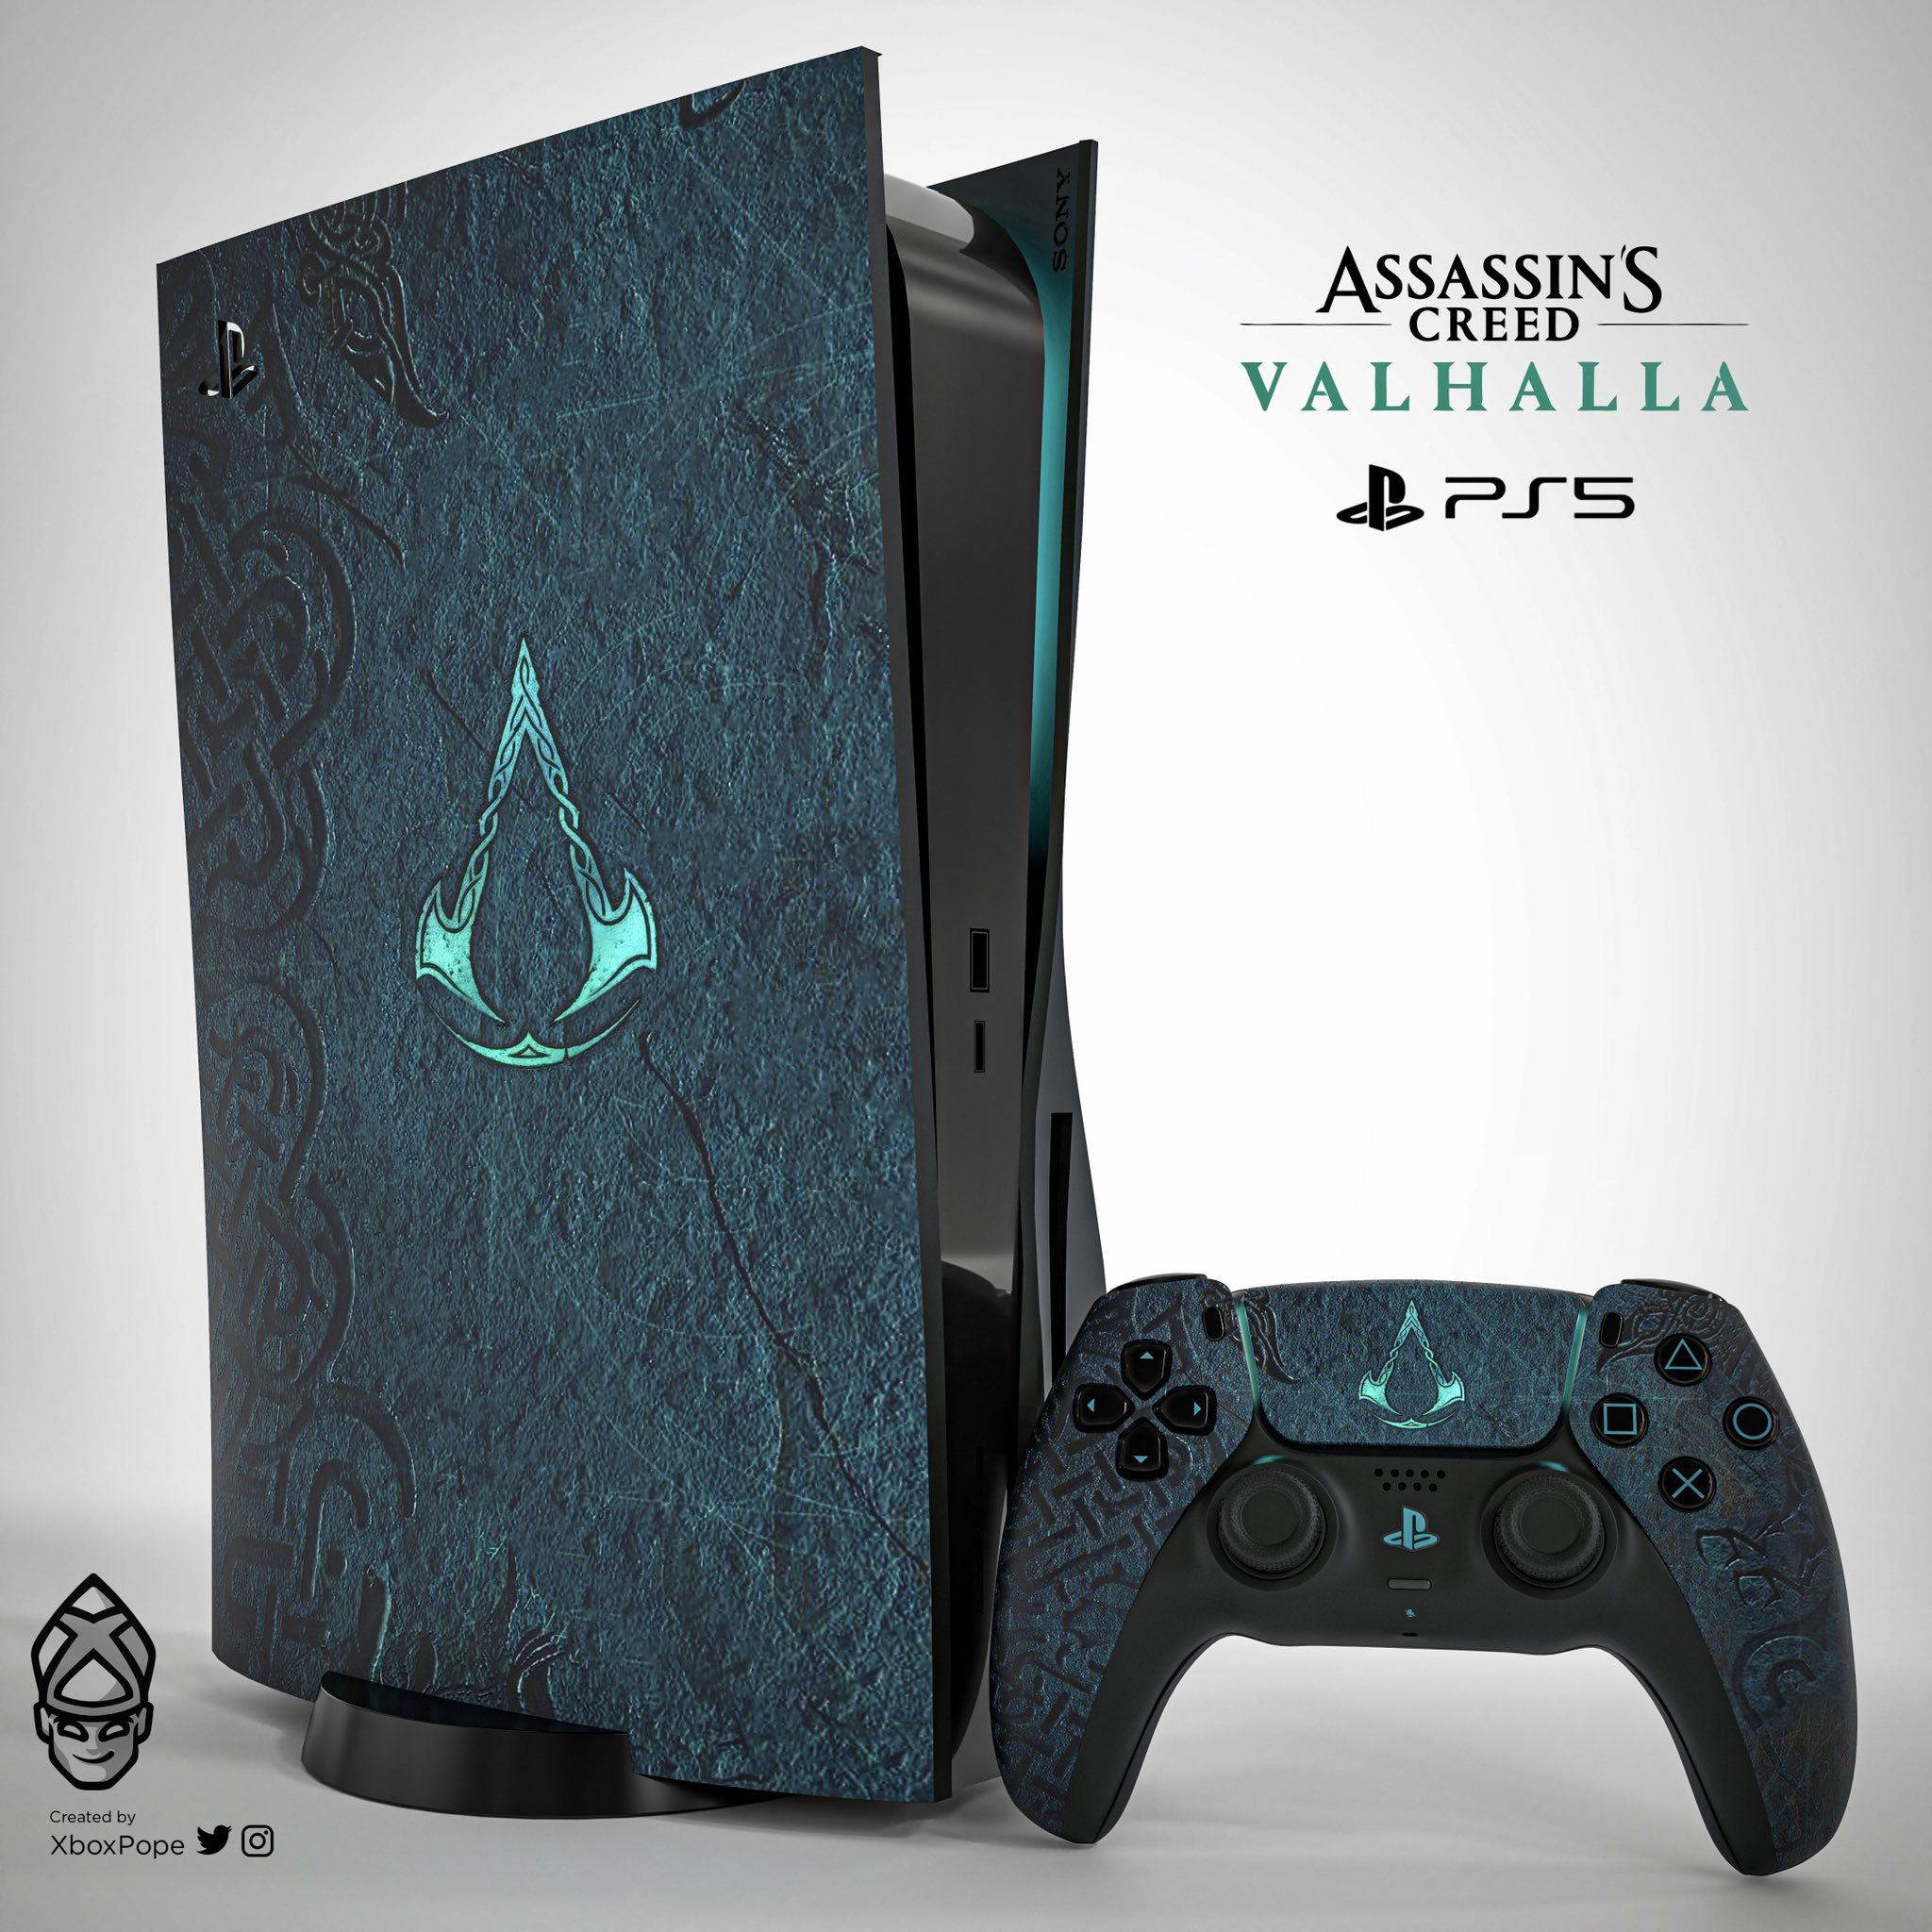 28 Xbox Series X And Ps5 Skins That Are A Bit Much Video Game Room Design Playstation 5 Video Games Playstation